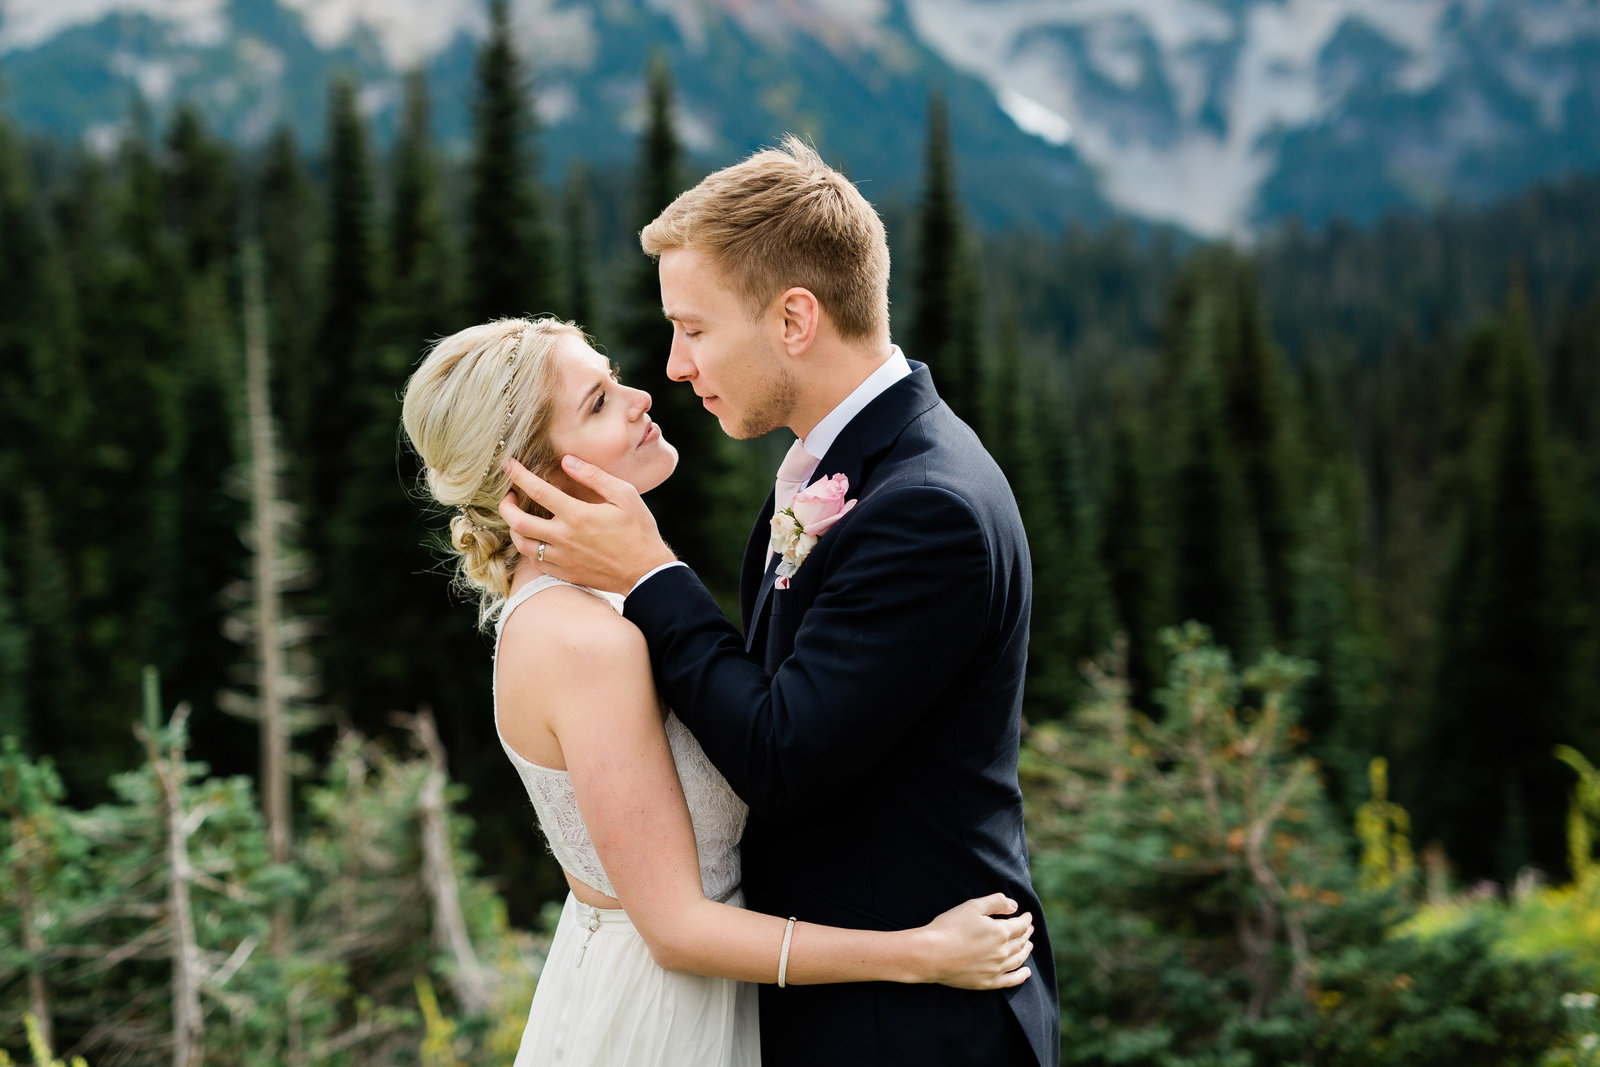 mount-rainier-national-park-elopement-cameron-zegers-photographer-seattle-142